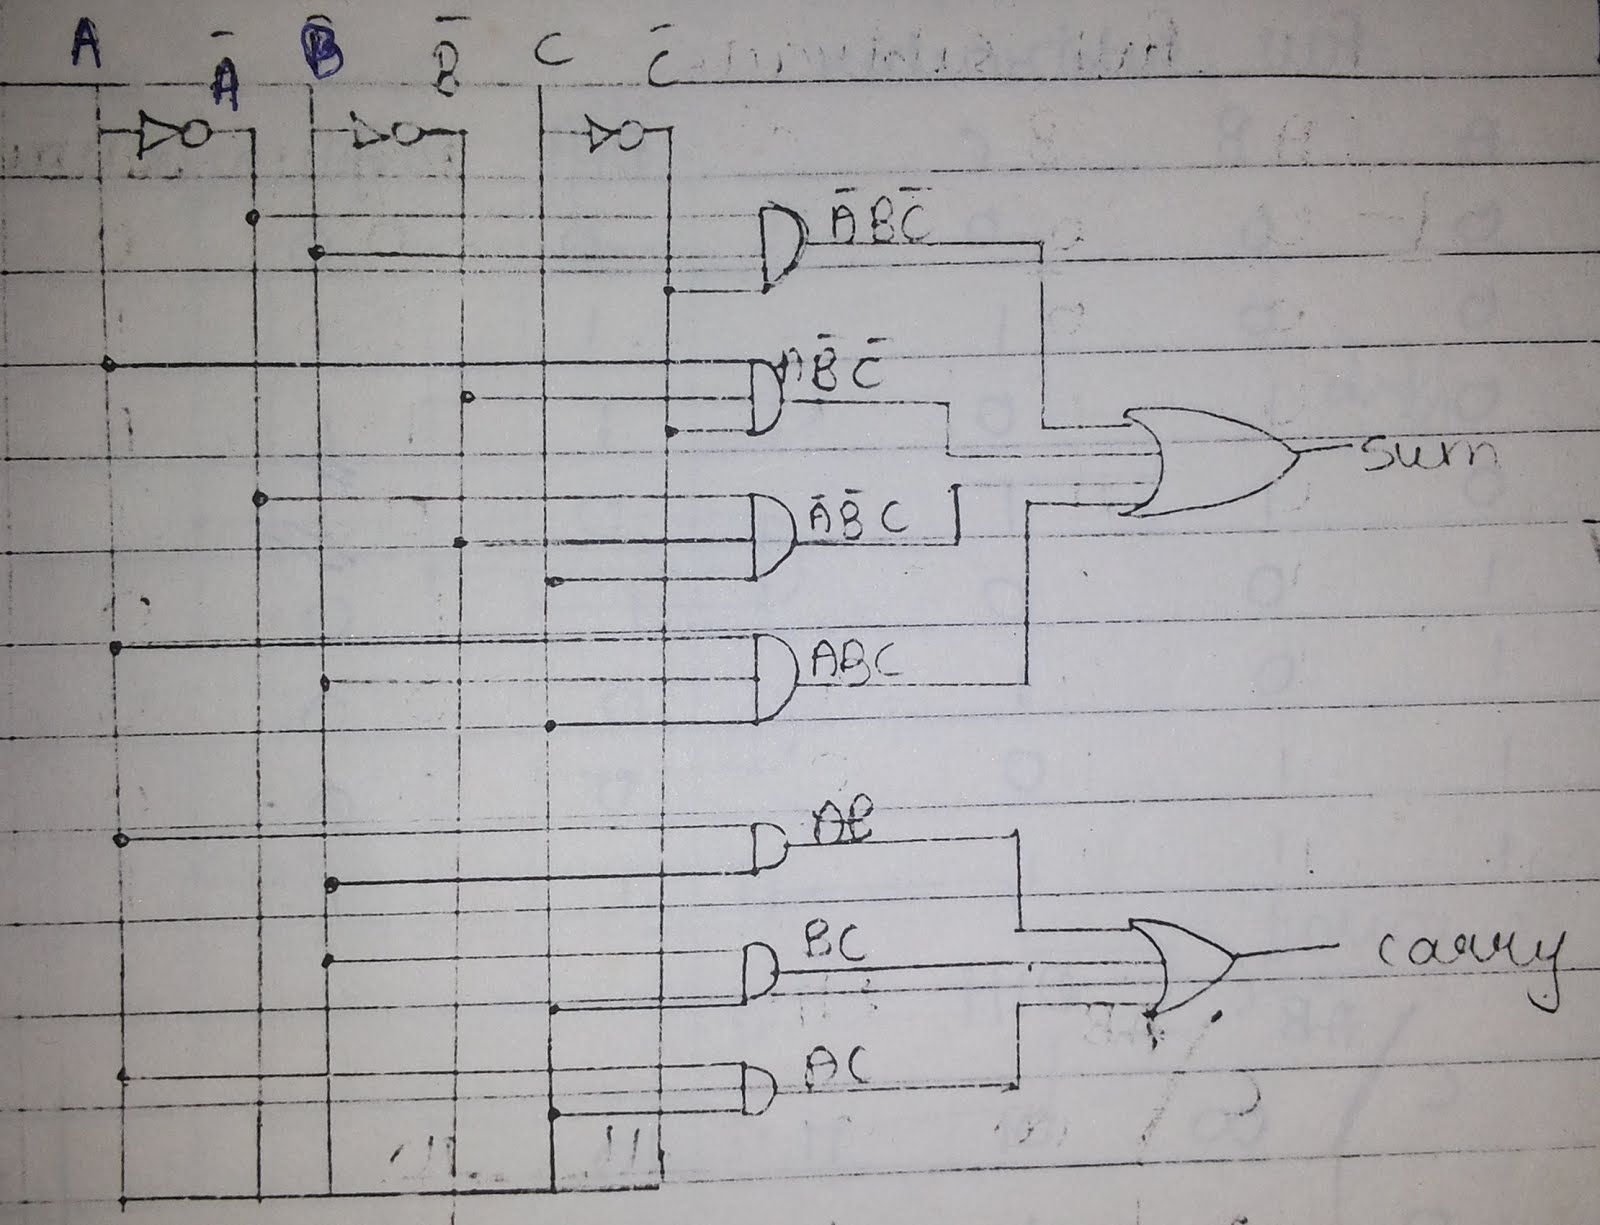 Basic Digital Techniques Applications Part 5 Full Adder Diagram As Shown In The Above All Products Are Formed With Logical And Gate For Sum Or Is Used